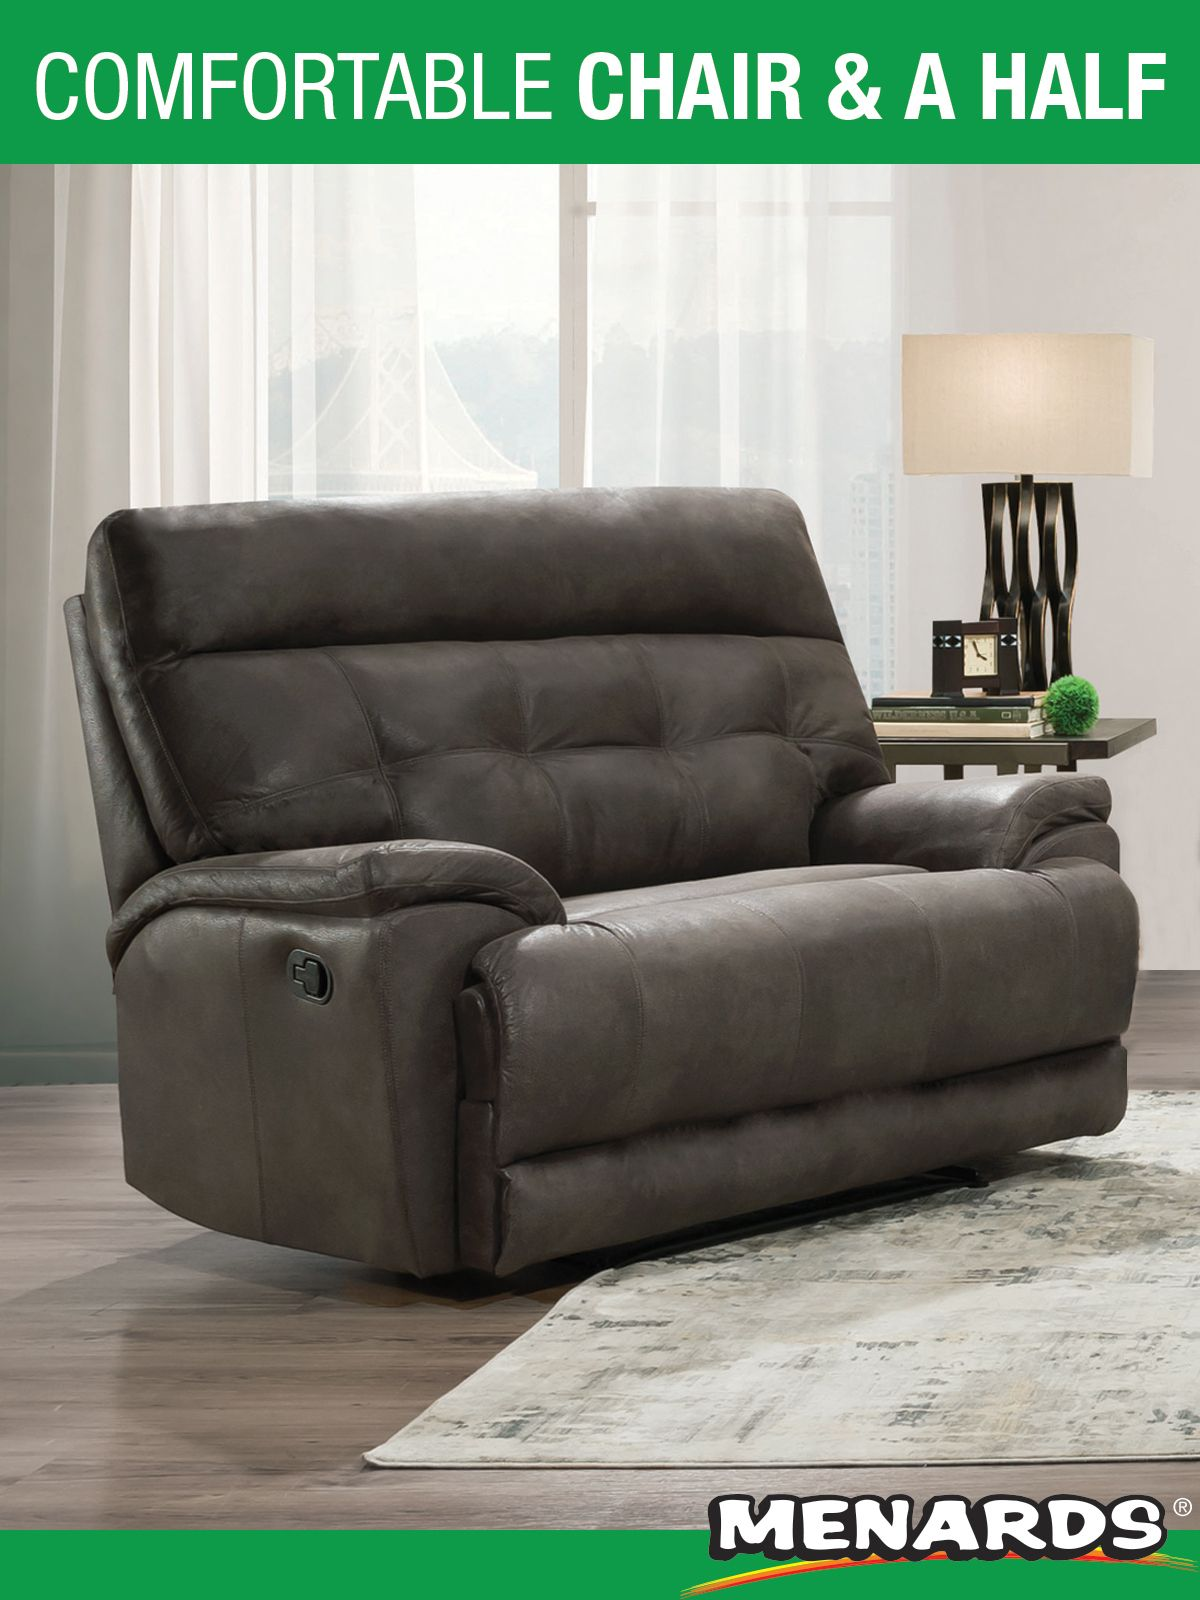 Get Large Scale Comfort With This Lane Chair And A Half It S